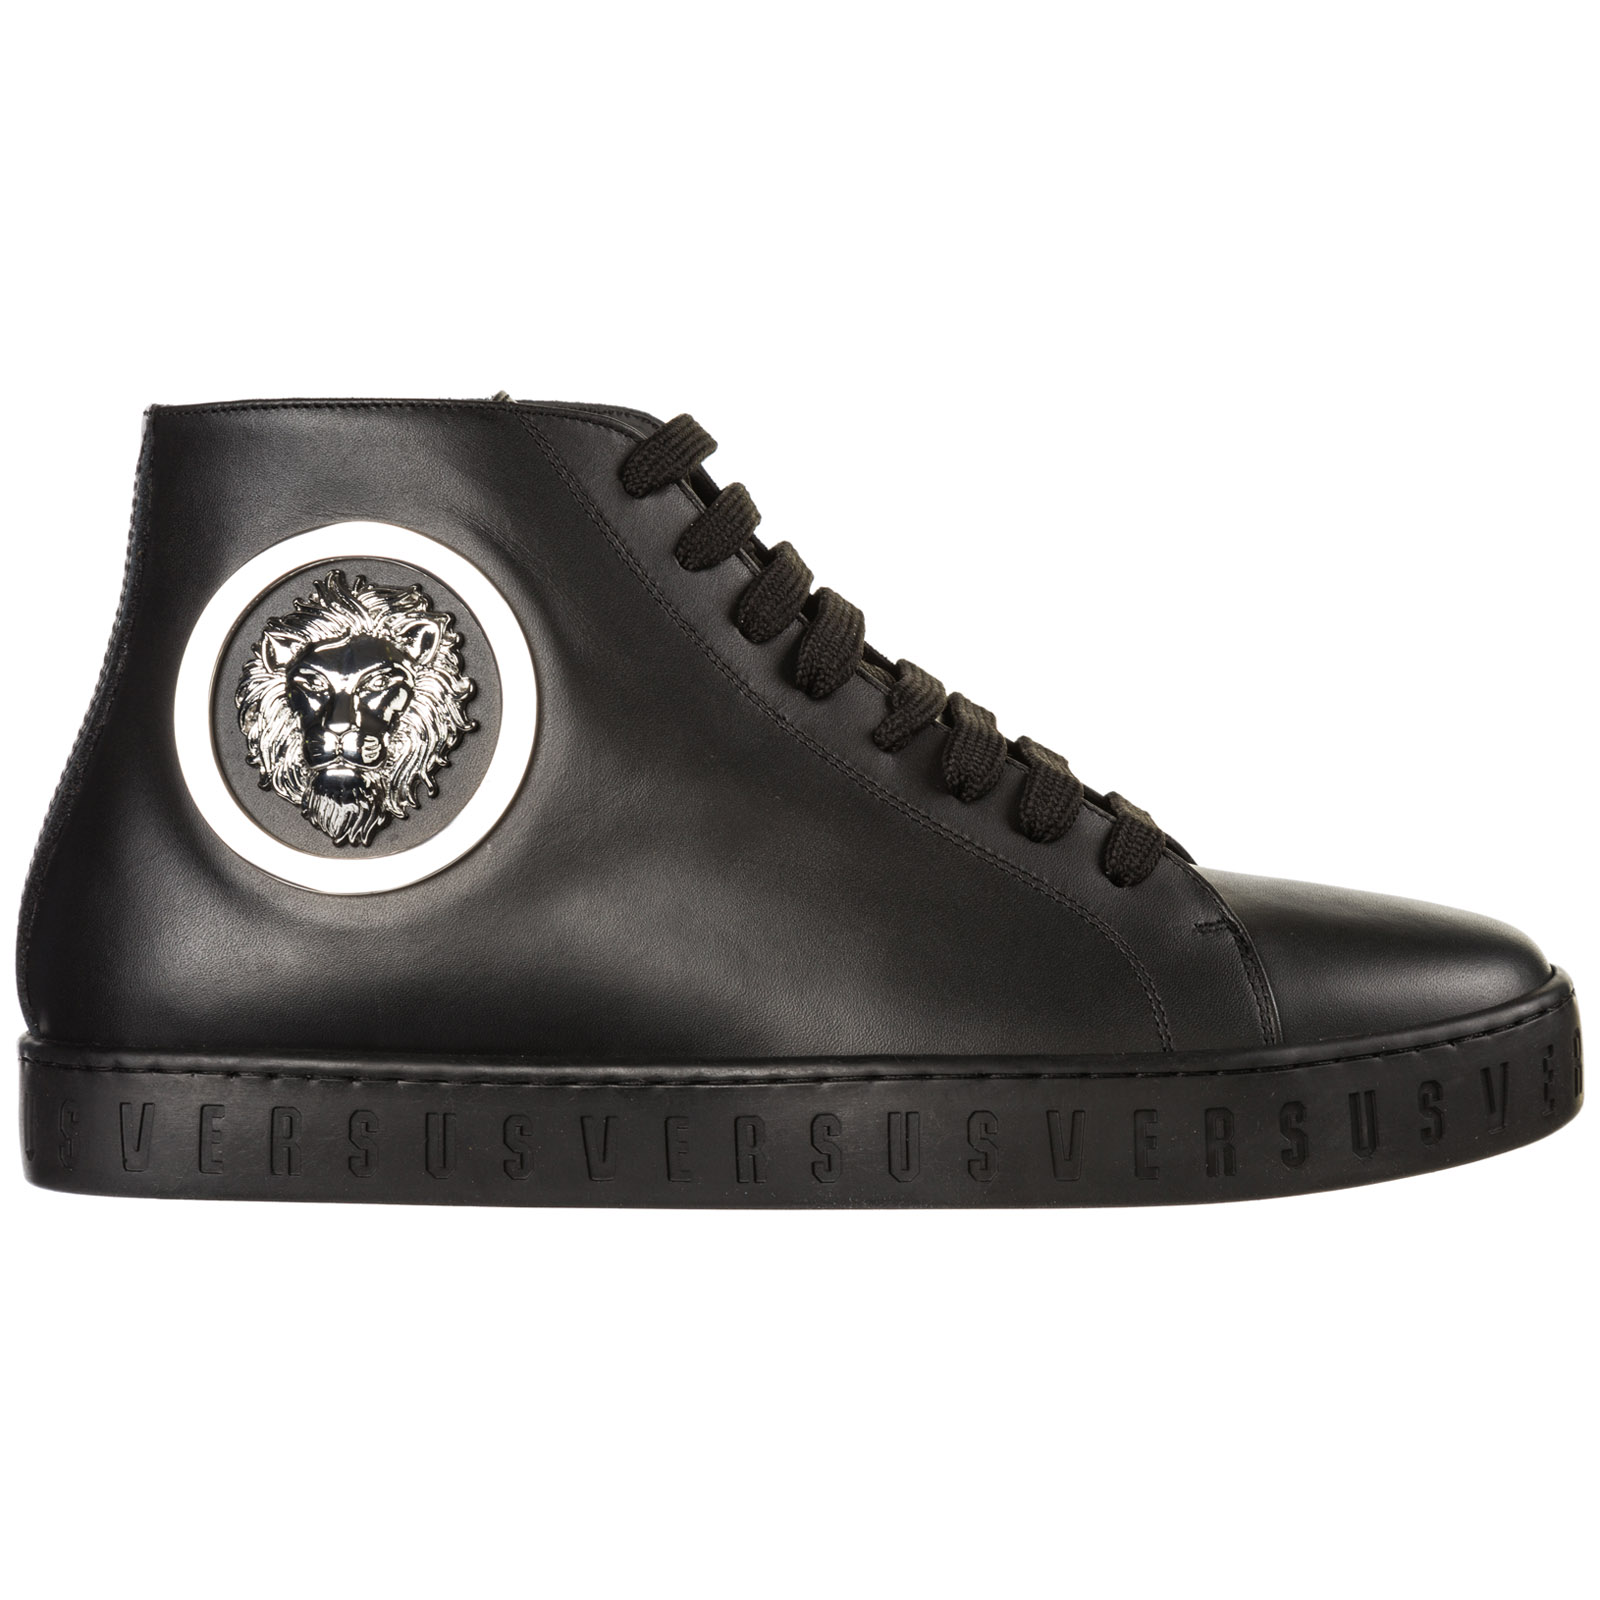 a9c2ea9196d Versus Versace Men s shoes high top leather trainers sneakers lion head